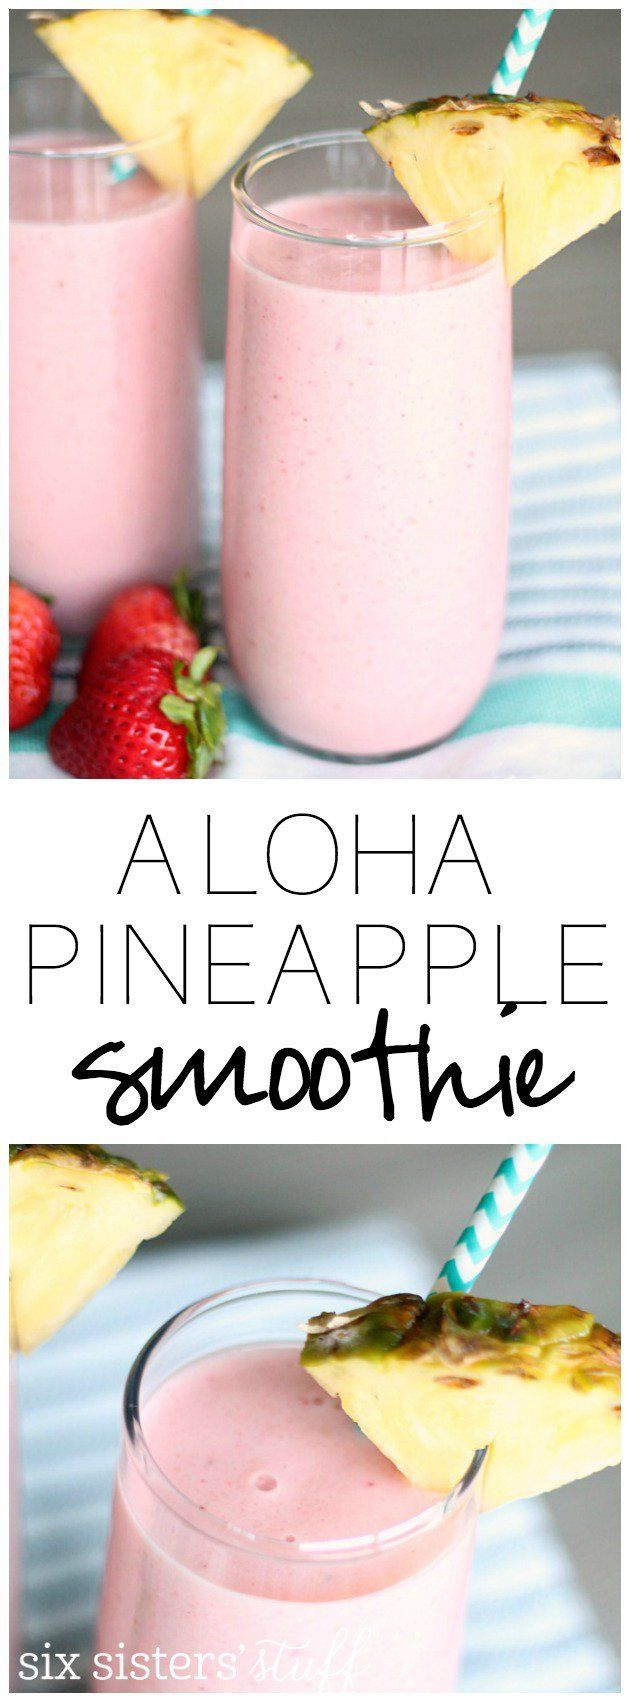 Copycat Jamba Juice Aloha Pineapple Smoothie from SixSistersStuff.com | Healthy Snack Recipes | Kid Approved Snacks | Summer Drinks | Non-alcoholic Drink Ideas